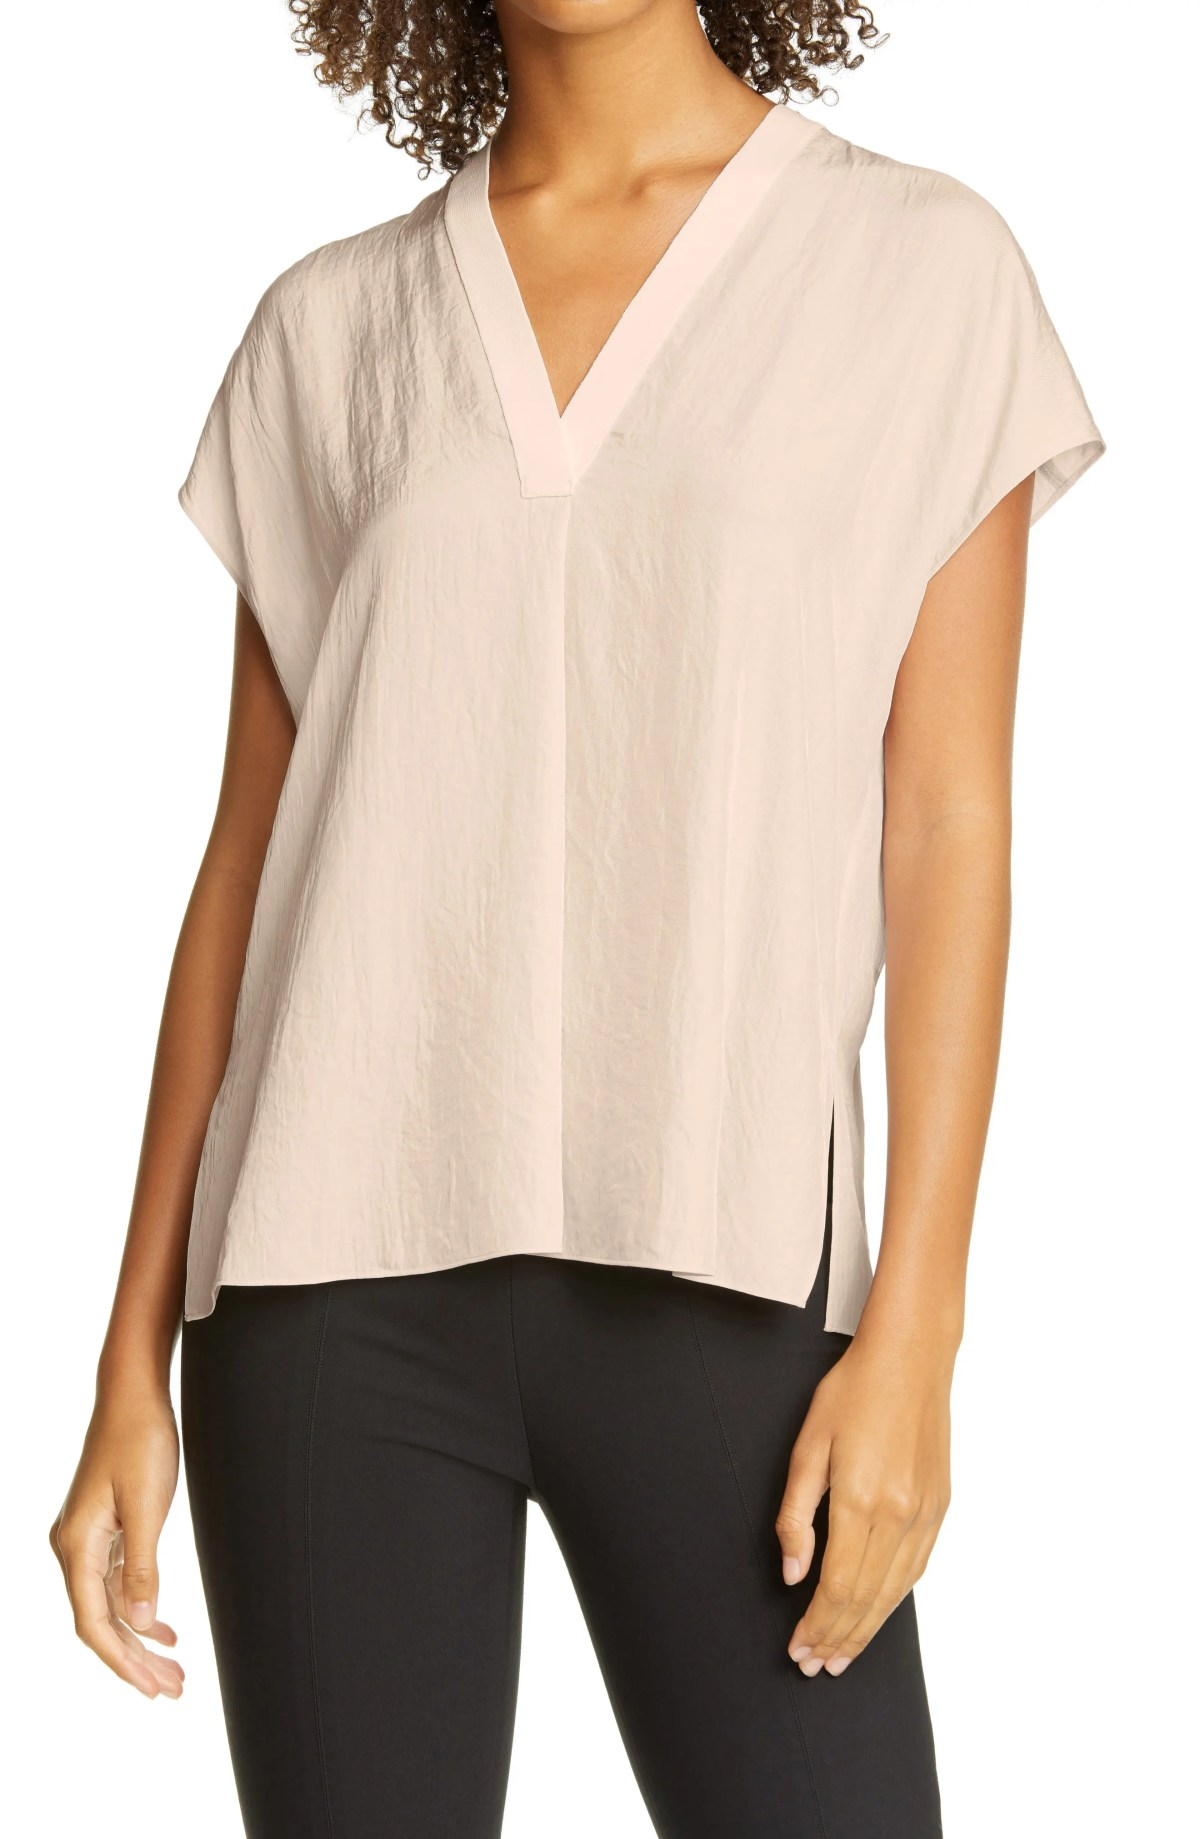 VINCE Rib Trim V-Neck Top, Main, color, CHAMPAGNE